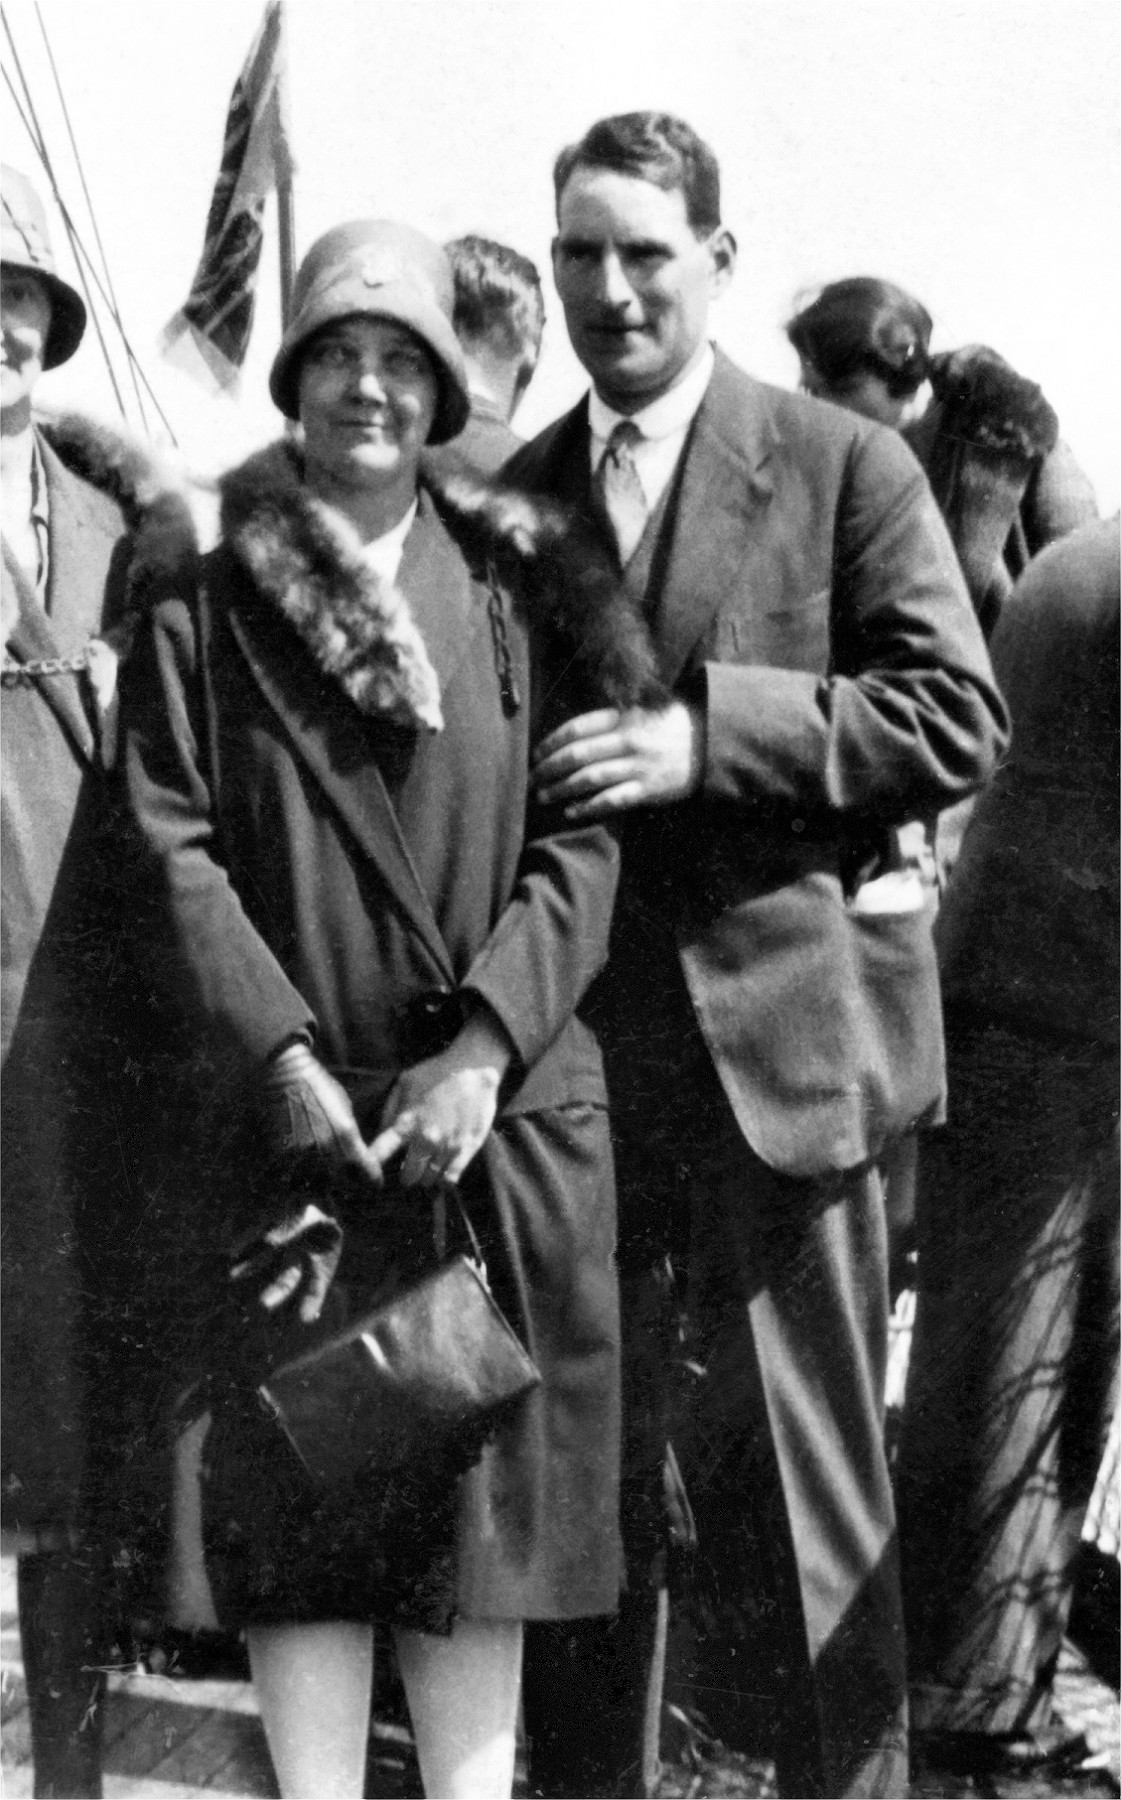 Florence and John Weallans (c1930)